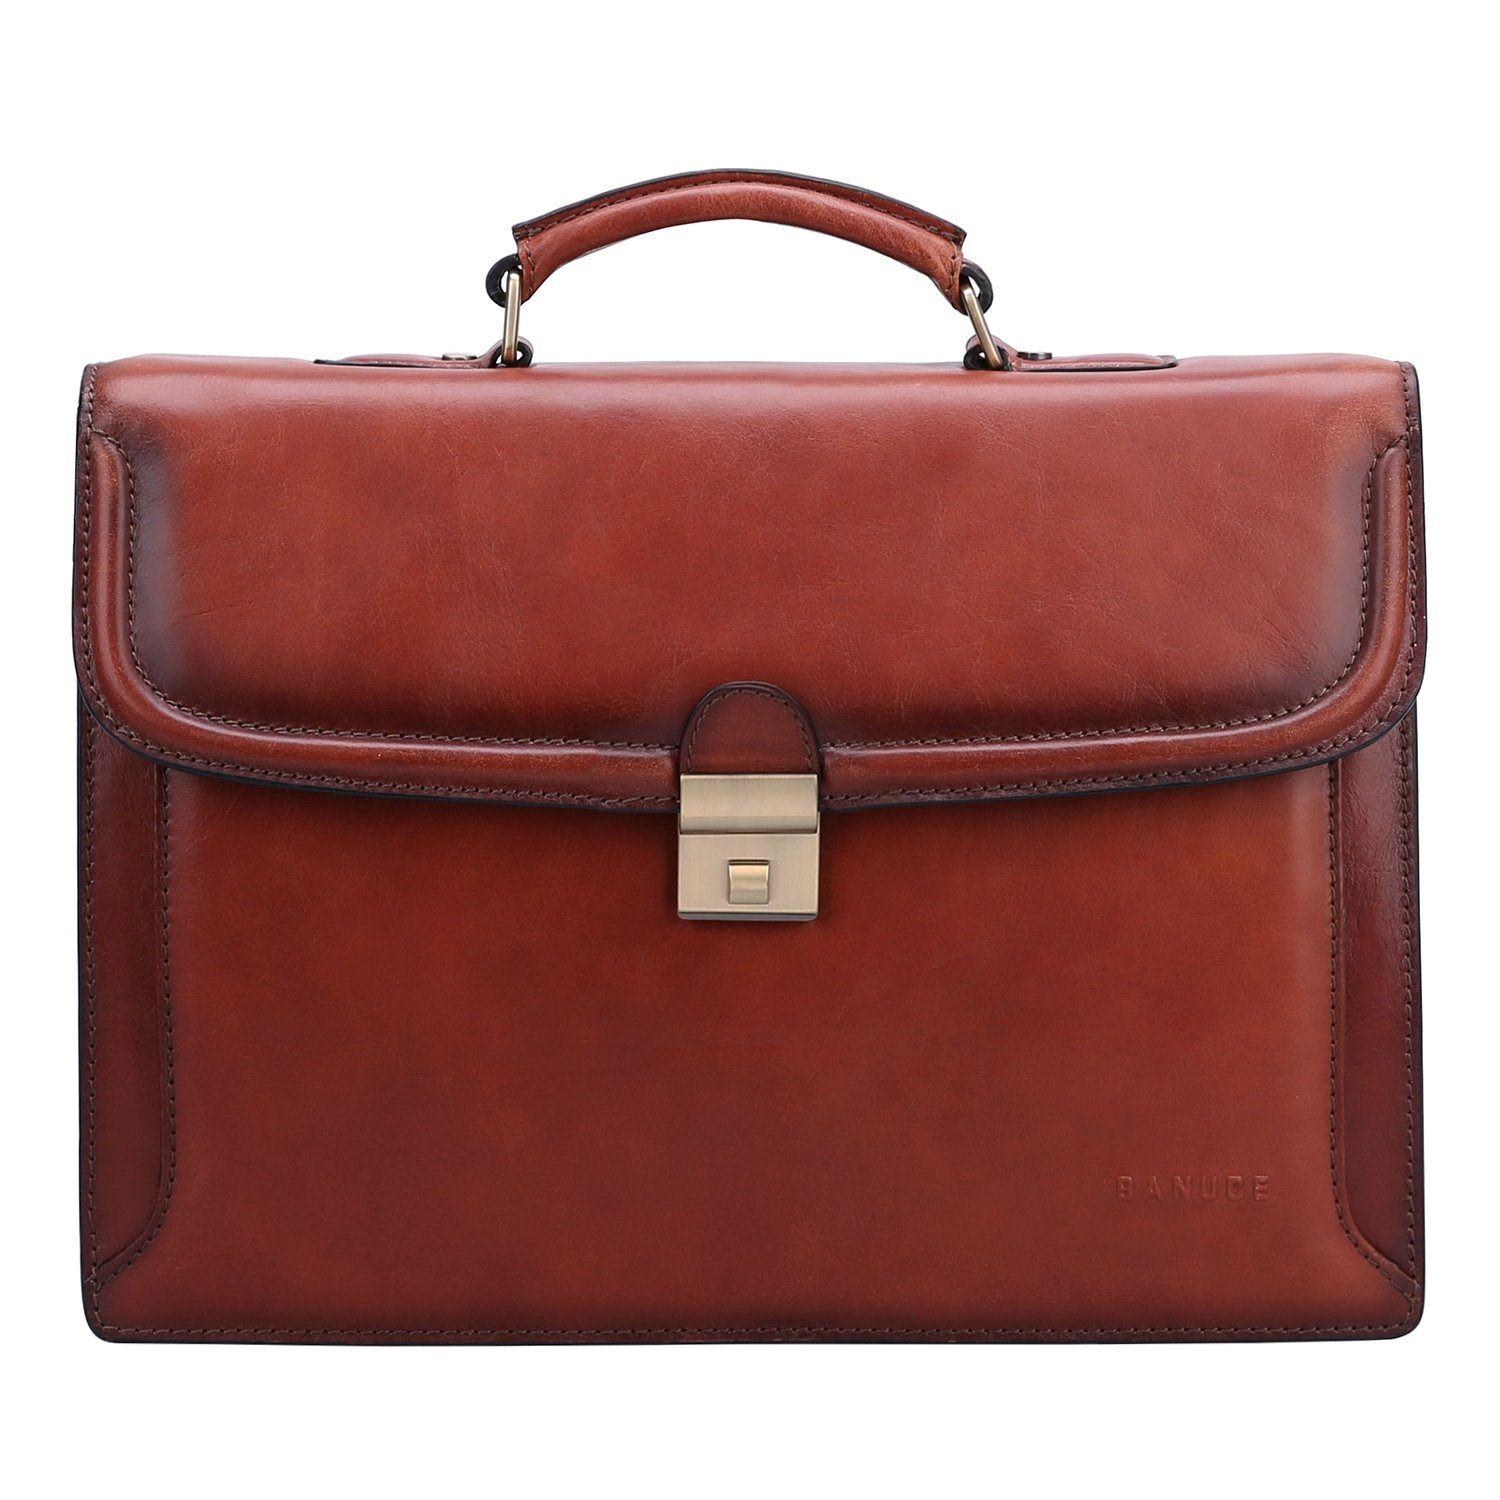 Banuce Men's Vintage Full Grain Leather Briefcase Lock Business Attache Case Executive Tote 14 inch Laptop Messenger Bag Brown